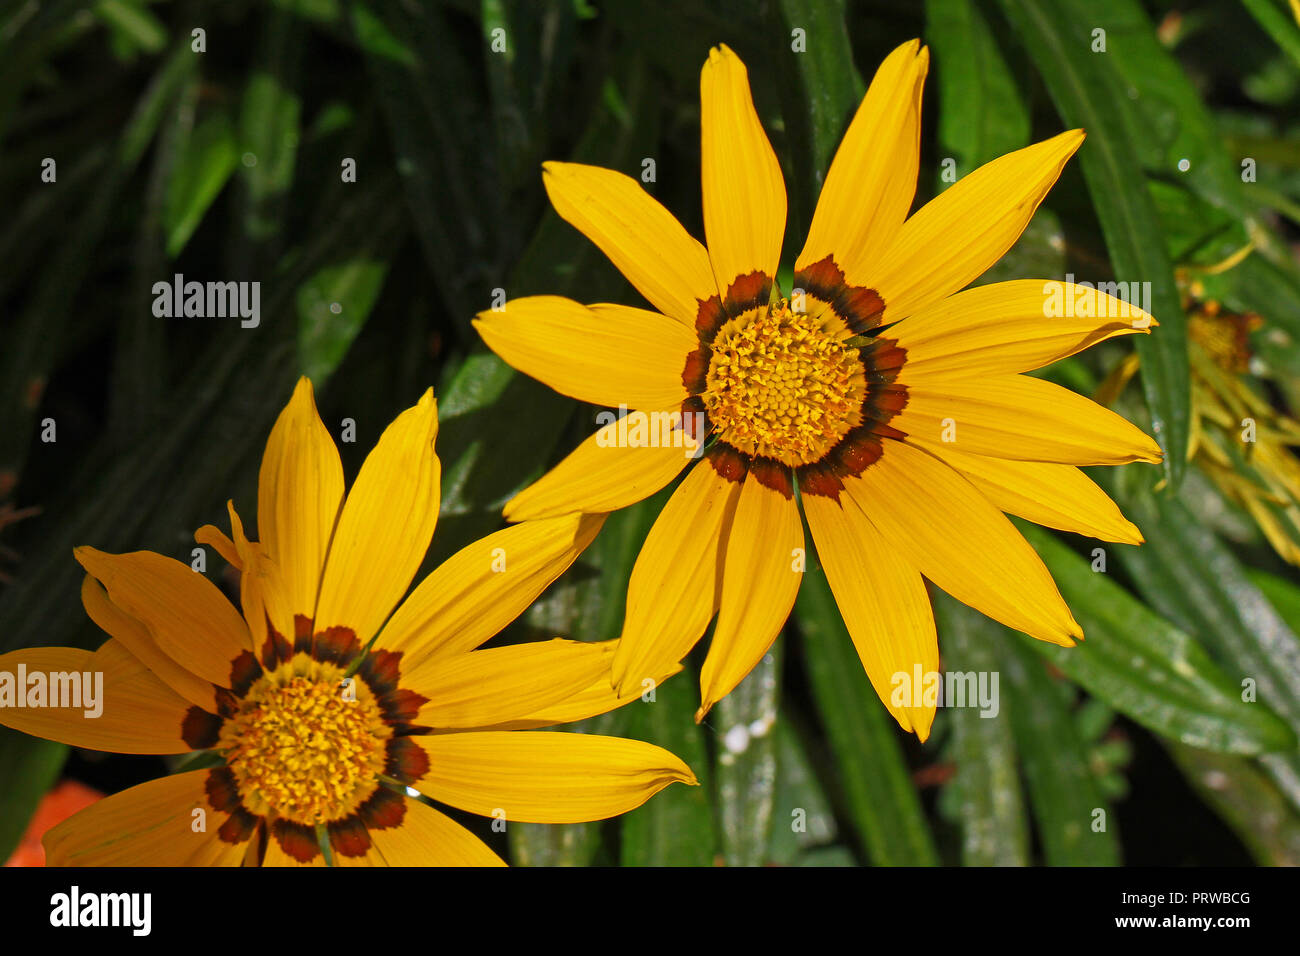 bright yellow gazania rigens or splendens variegata compositae asteraceae also known as treasure flower blooming in late summer in Italy - Stock Image